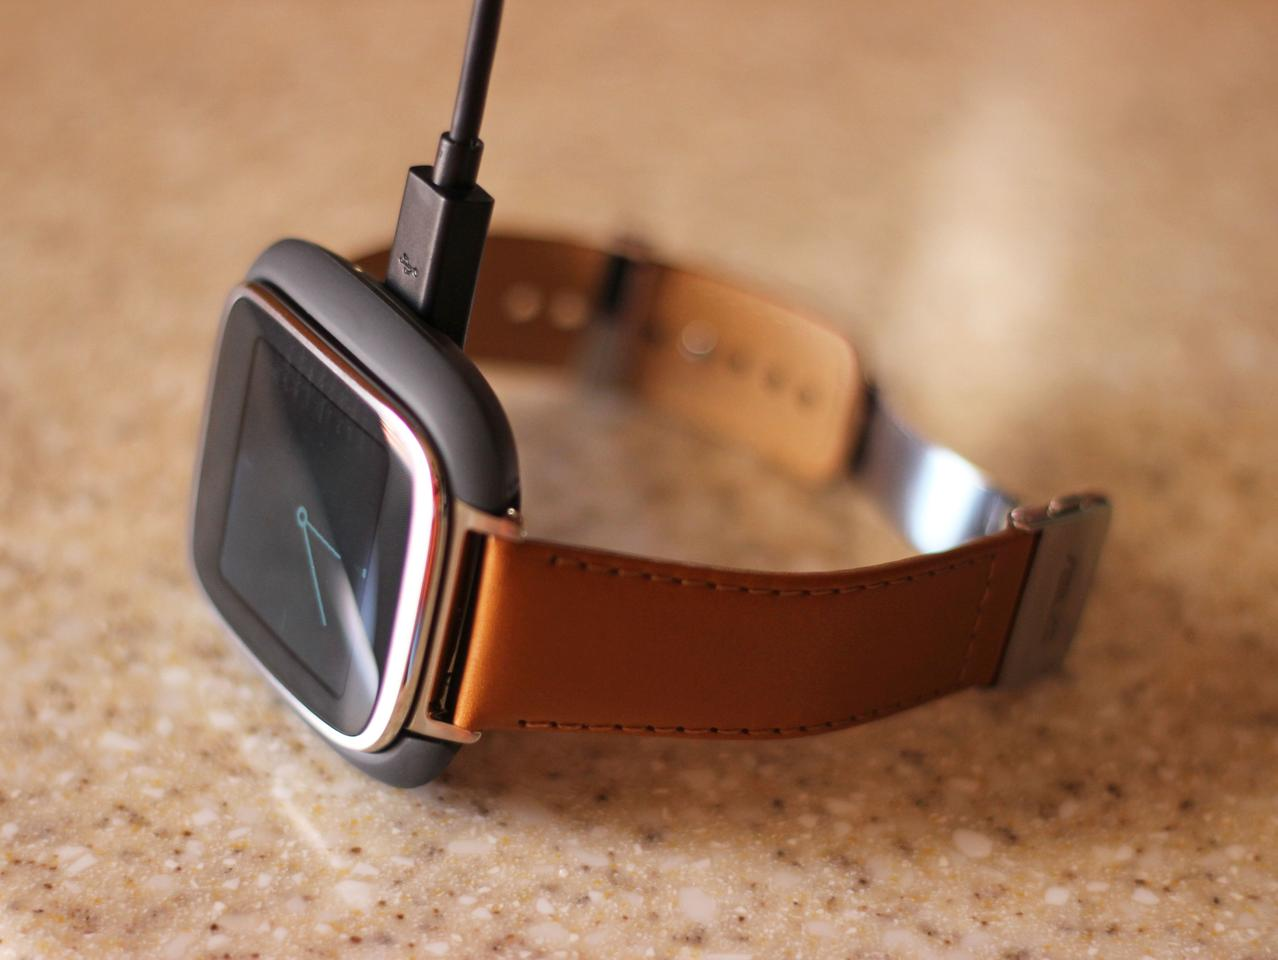 The ZenWatch in its charging cradle (Photo: Will Shanklin/Gizmag.com)